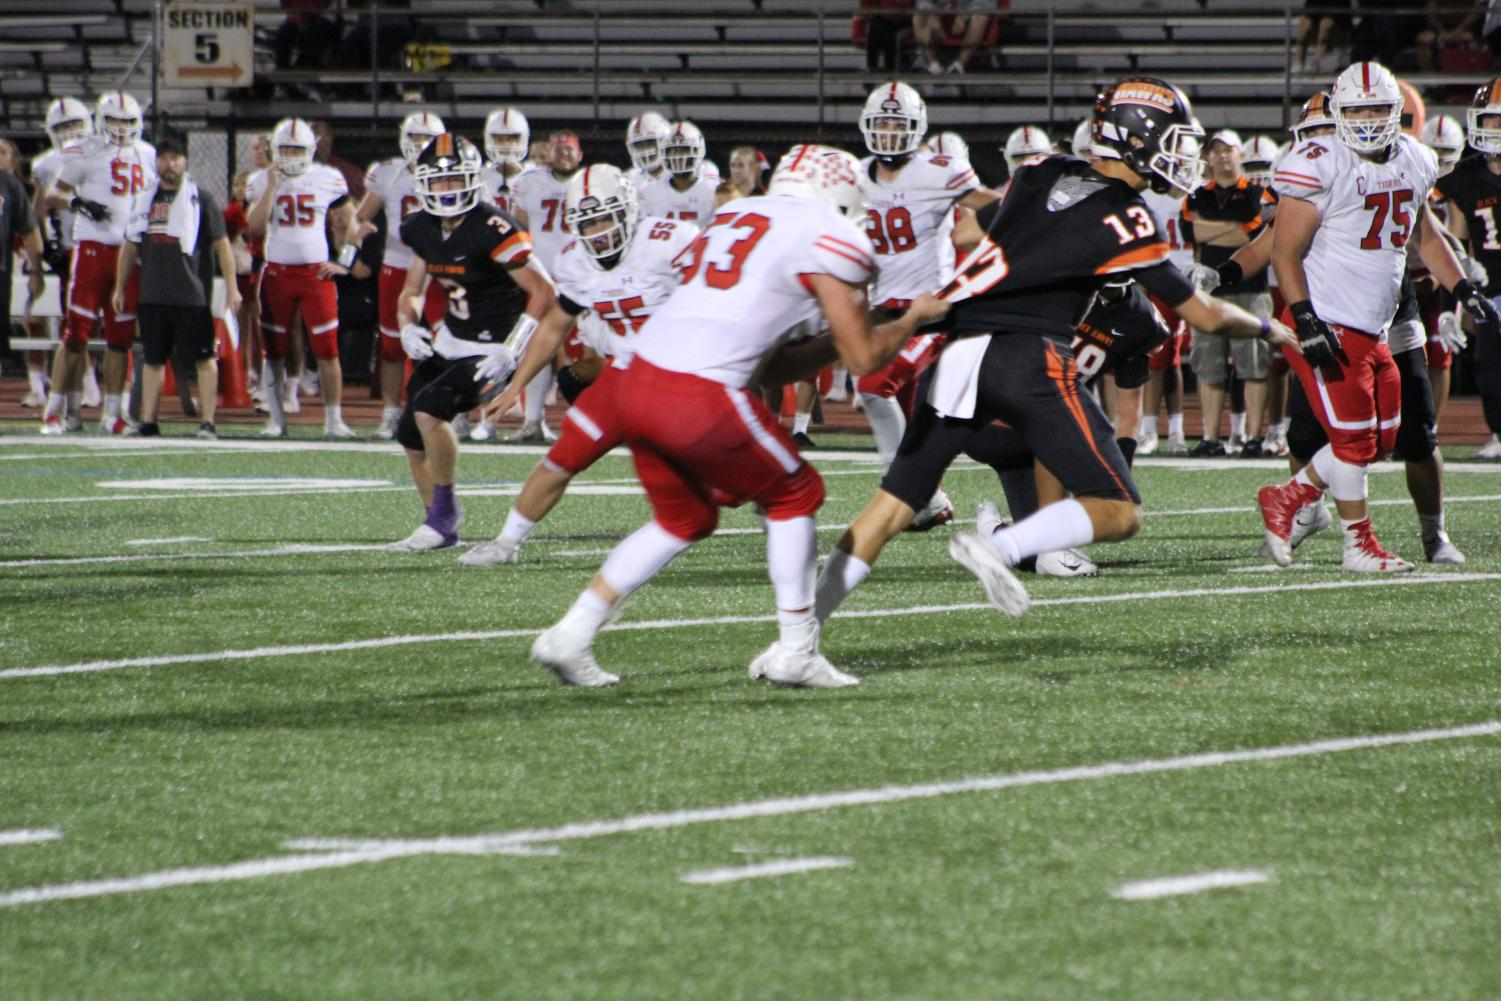 QB Anthony Chiccitt tries to escape the hands of the defense during the Hawks Homecoming game vs. Moon.